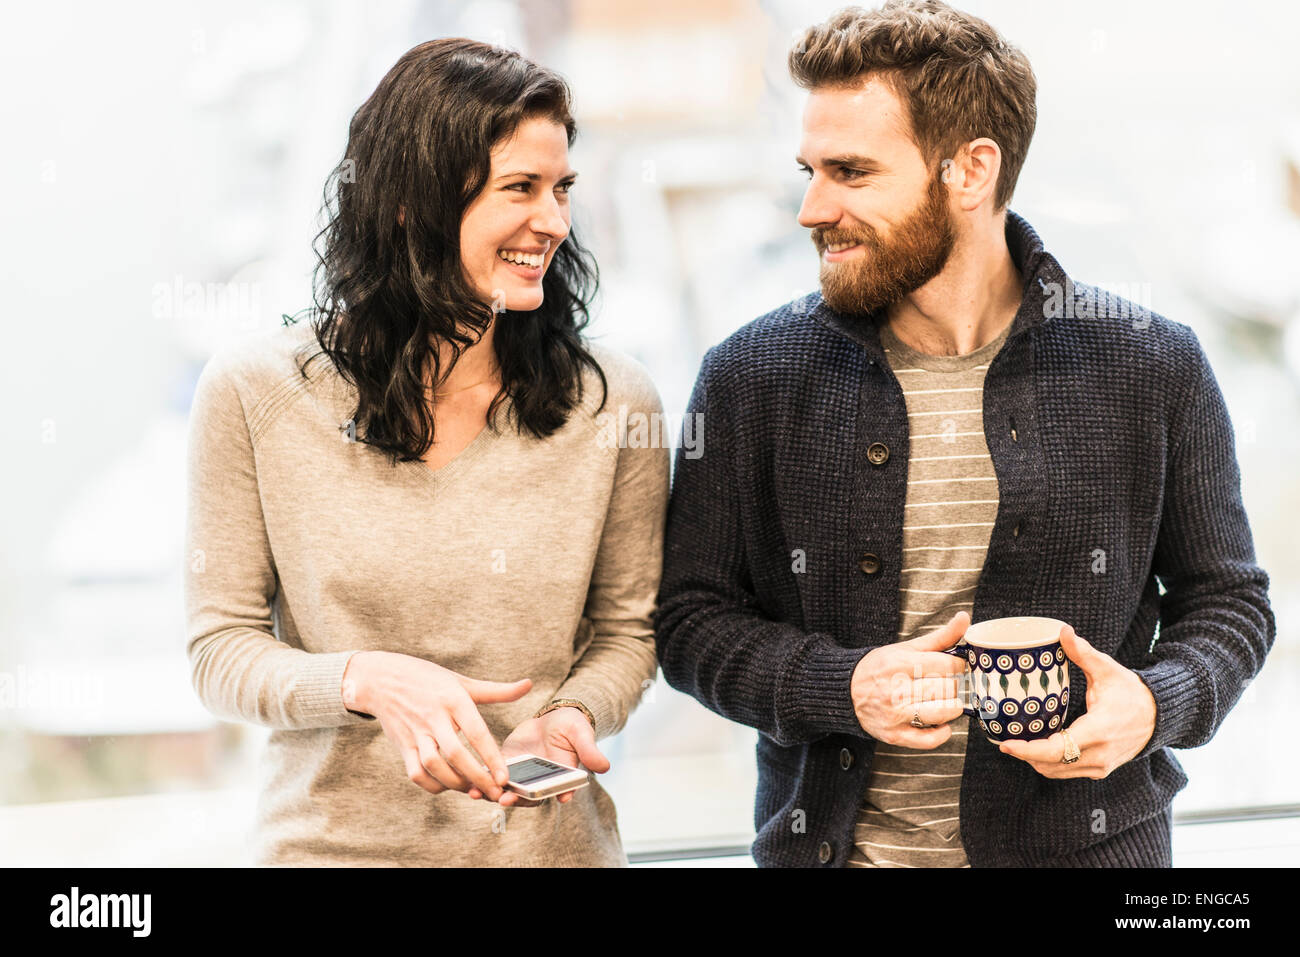 A business woman seated by a window holding a smart phone, talking to a man with a coffee cup. - Stock Image